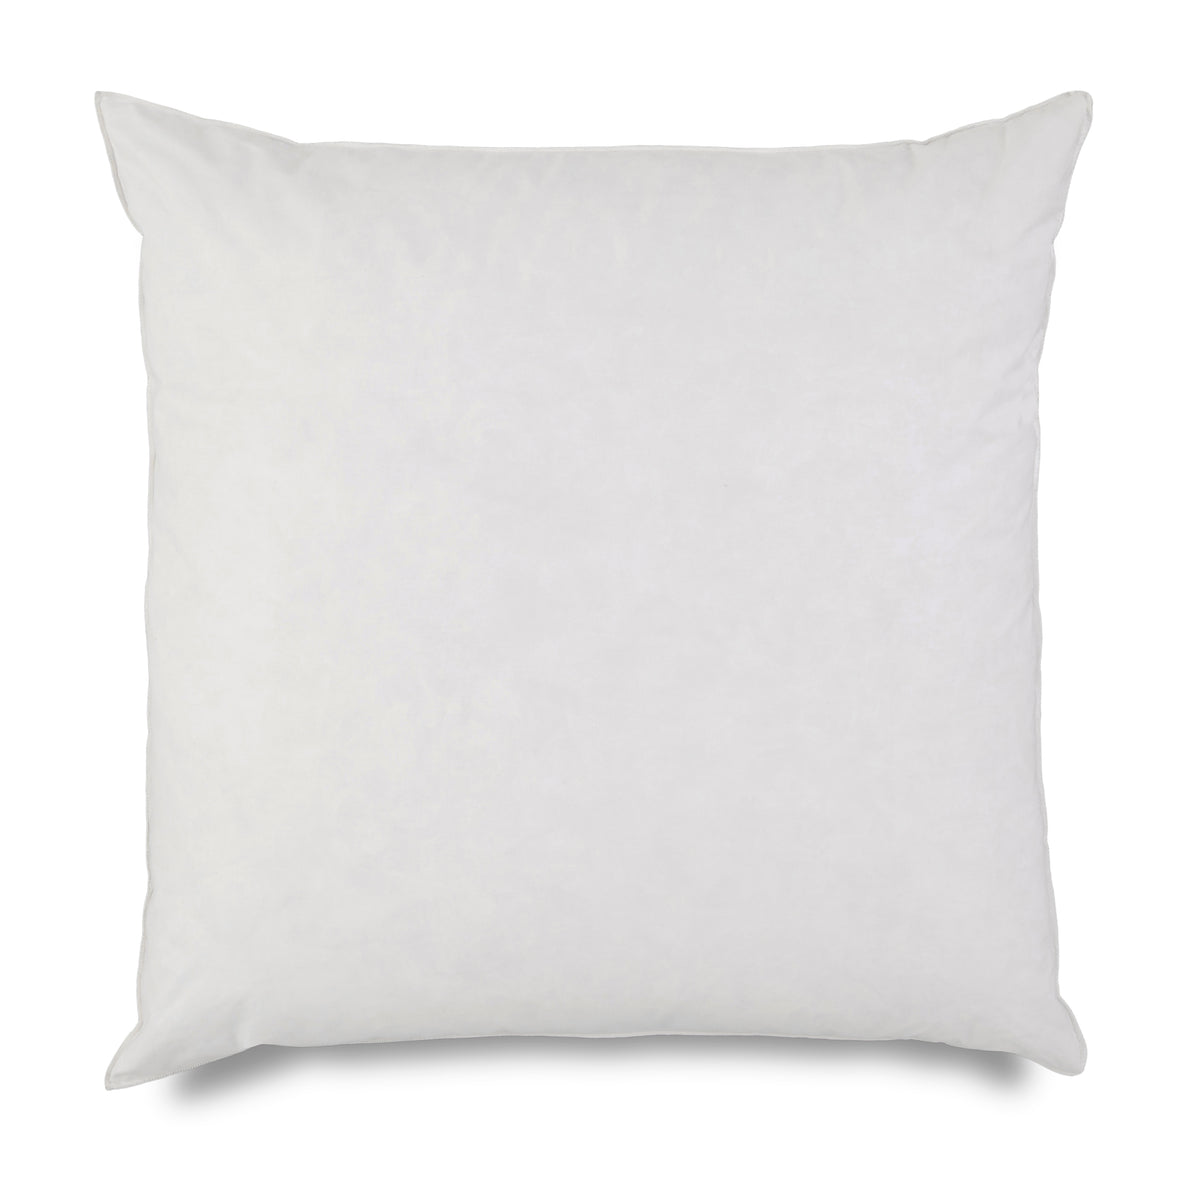 Martex European Pillow Insert